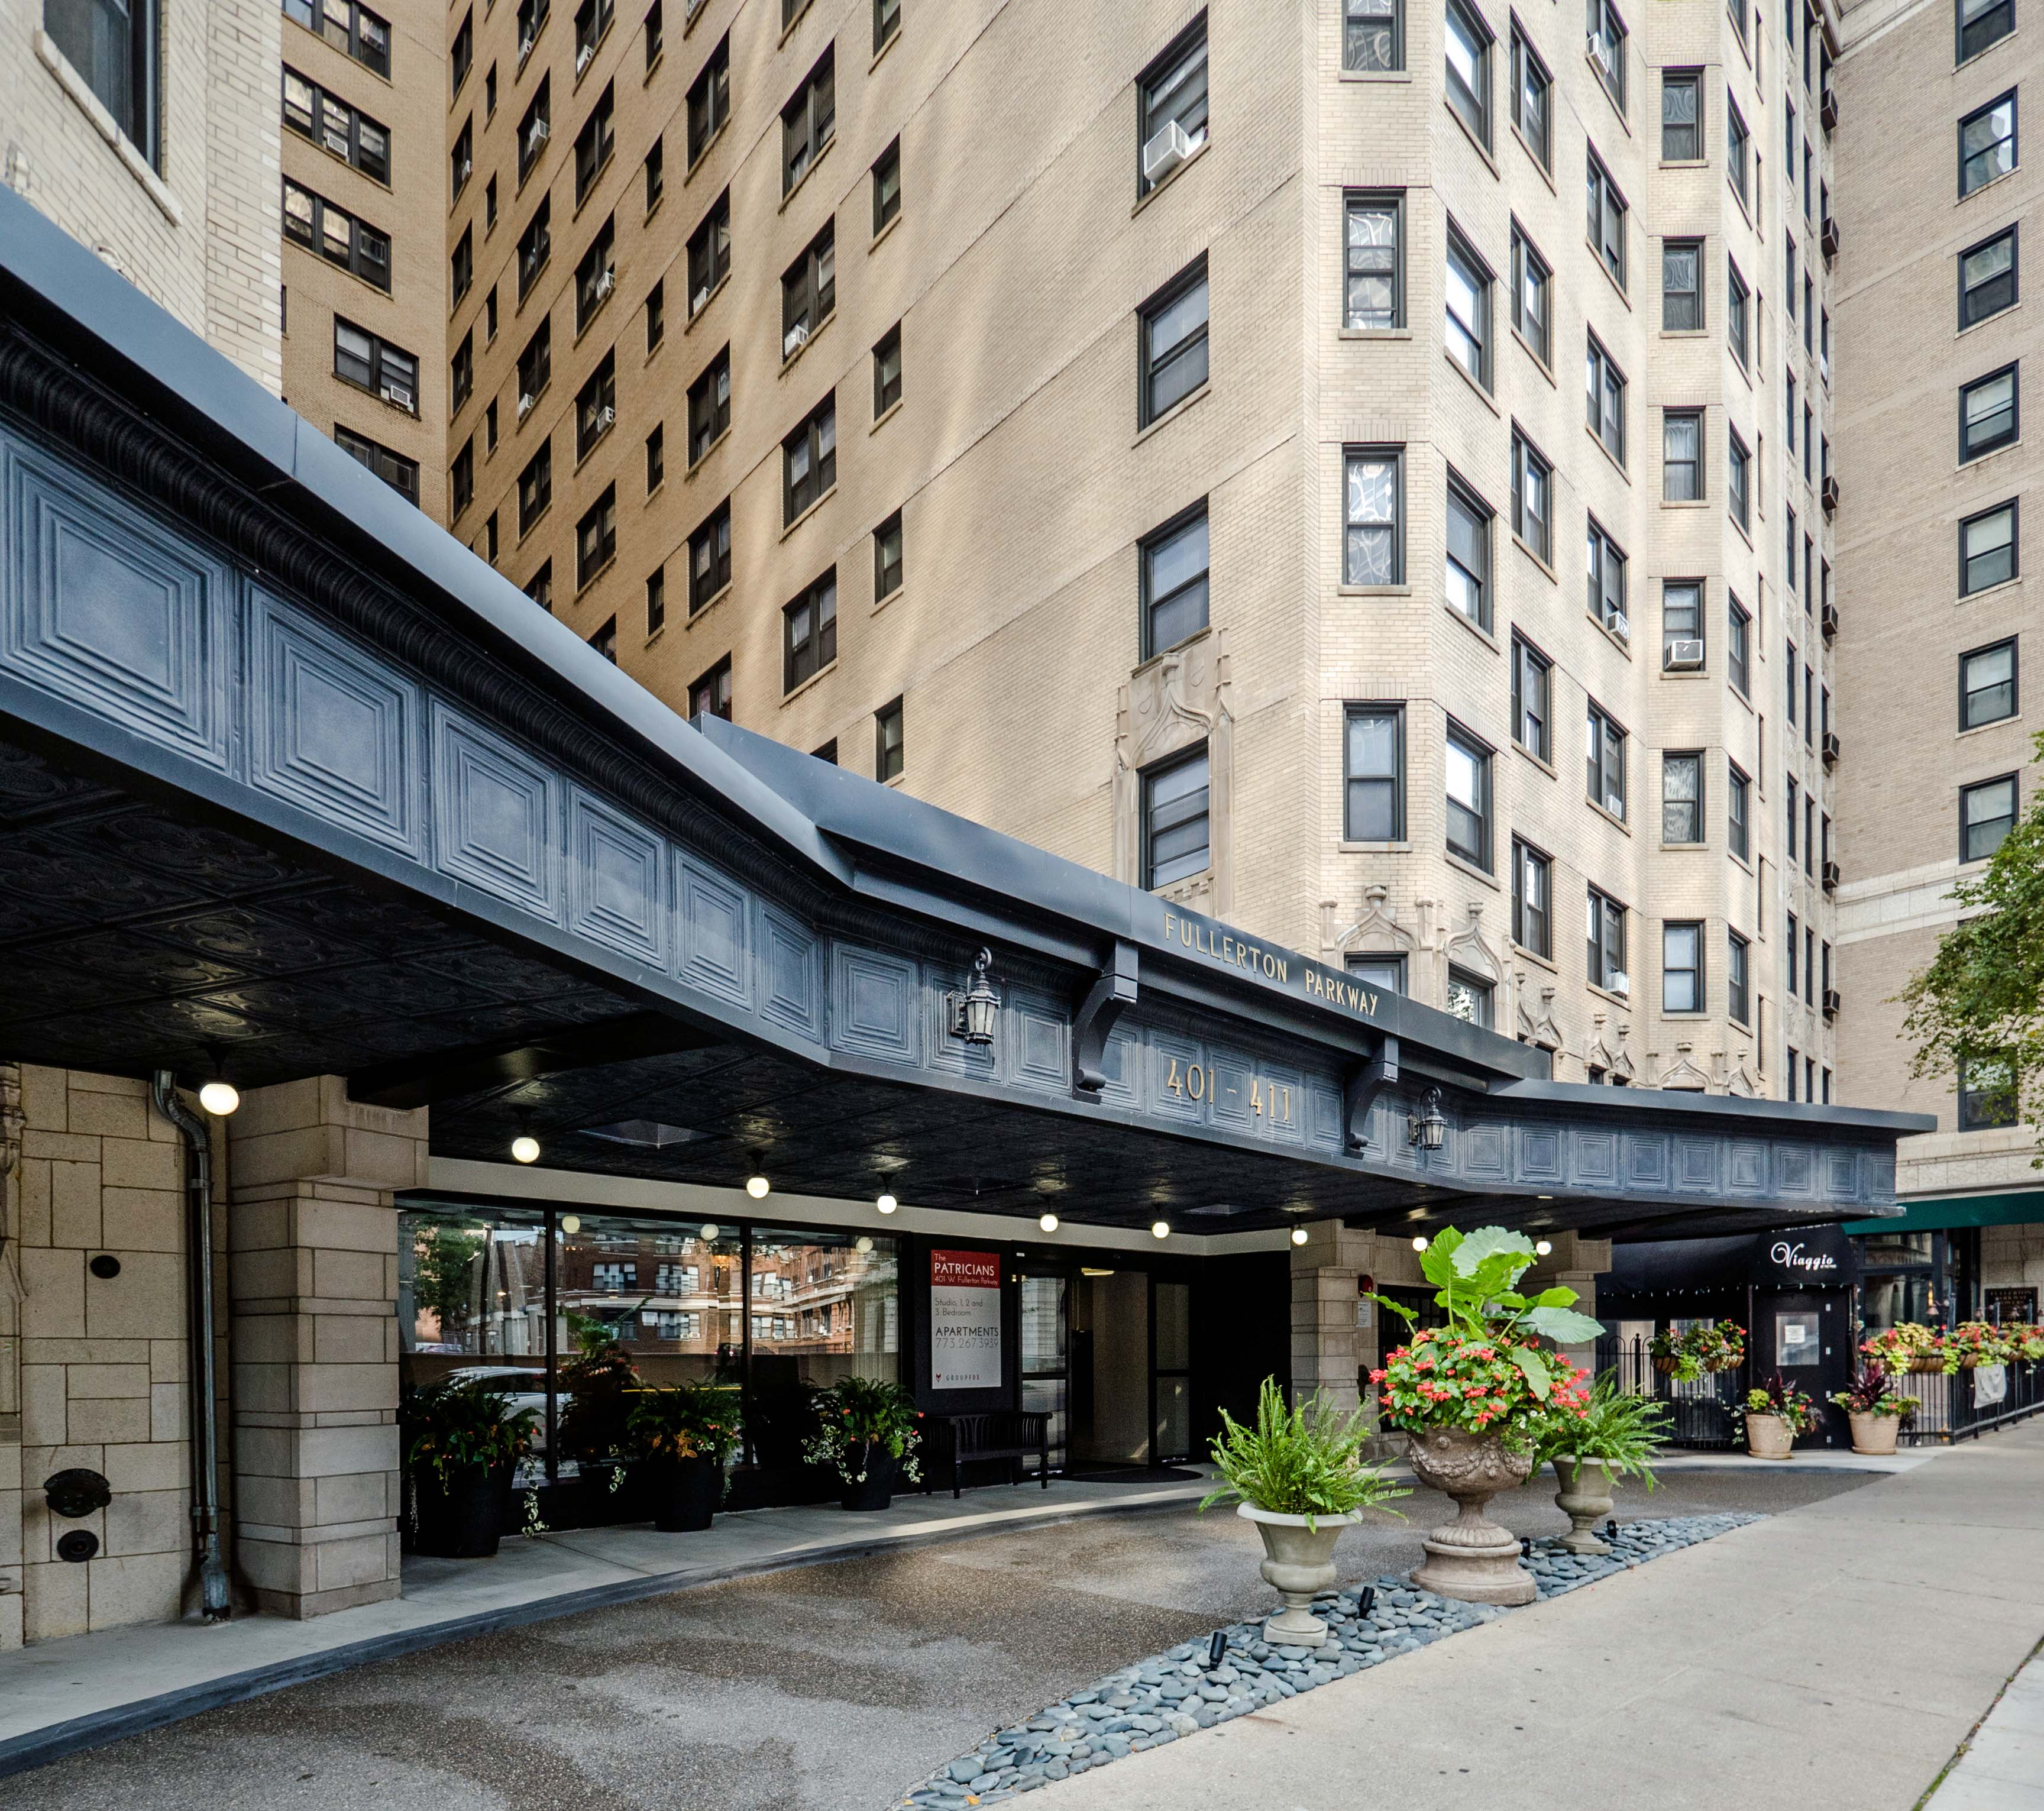 Lincoln Park Apartments For Rent: The Patricians Apartments, 401 W Fullerton Pkwy, Lincoln